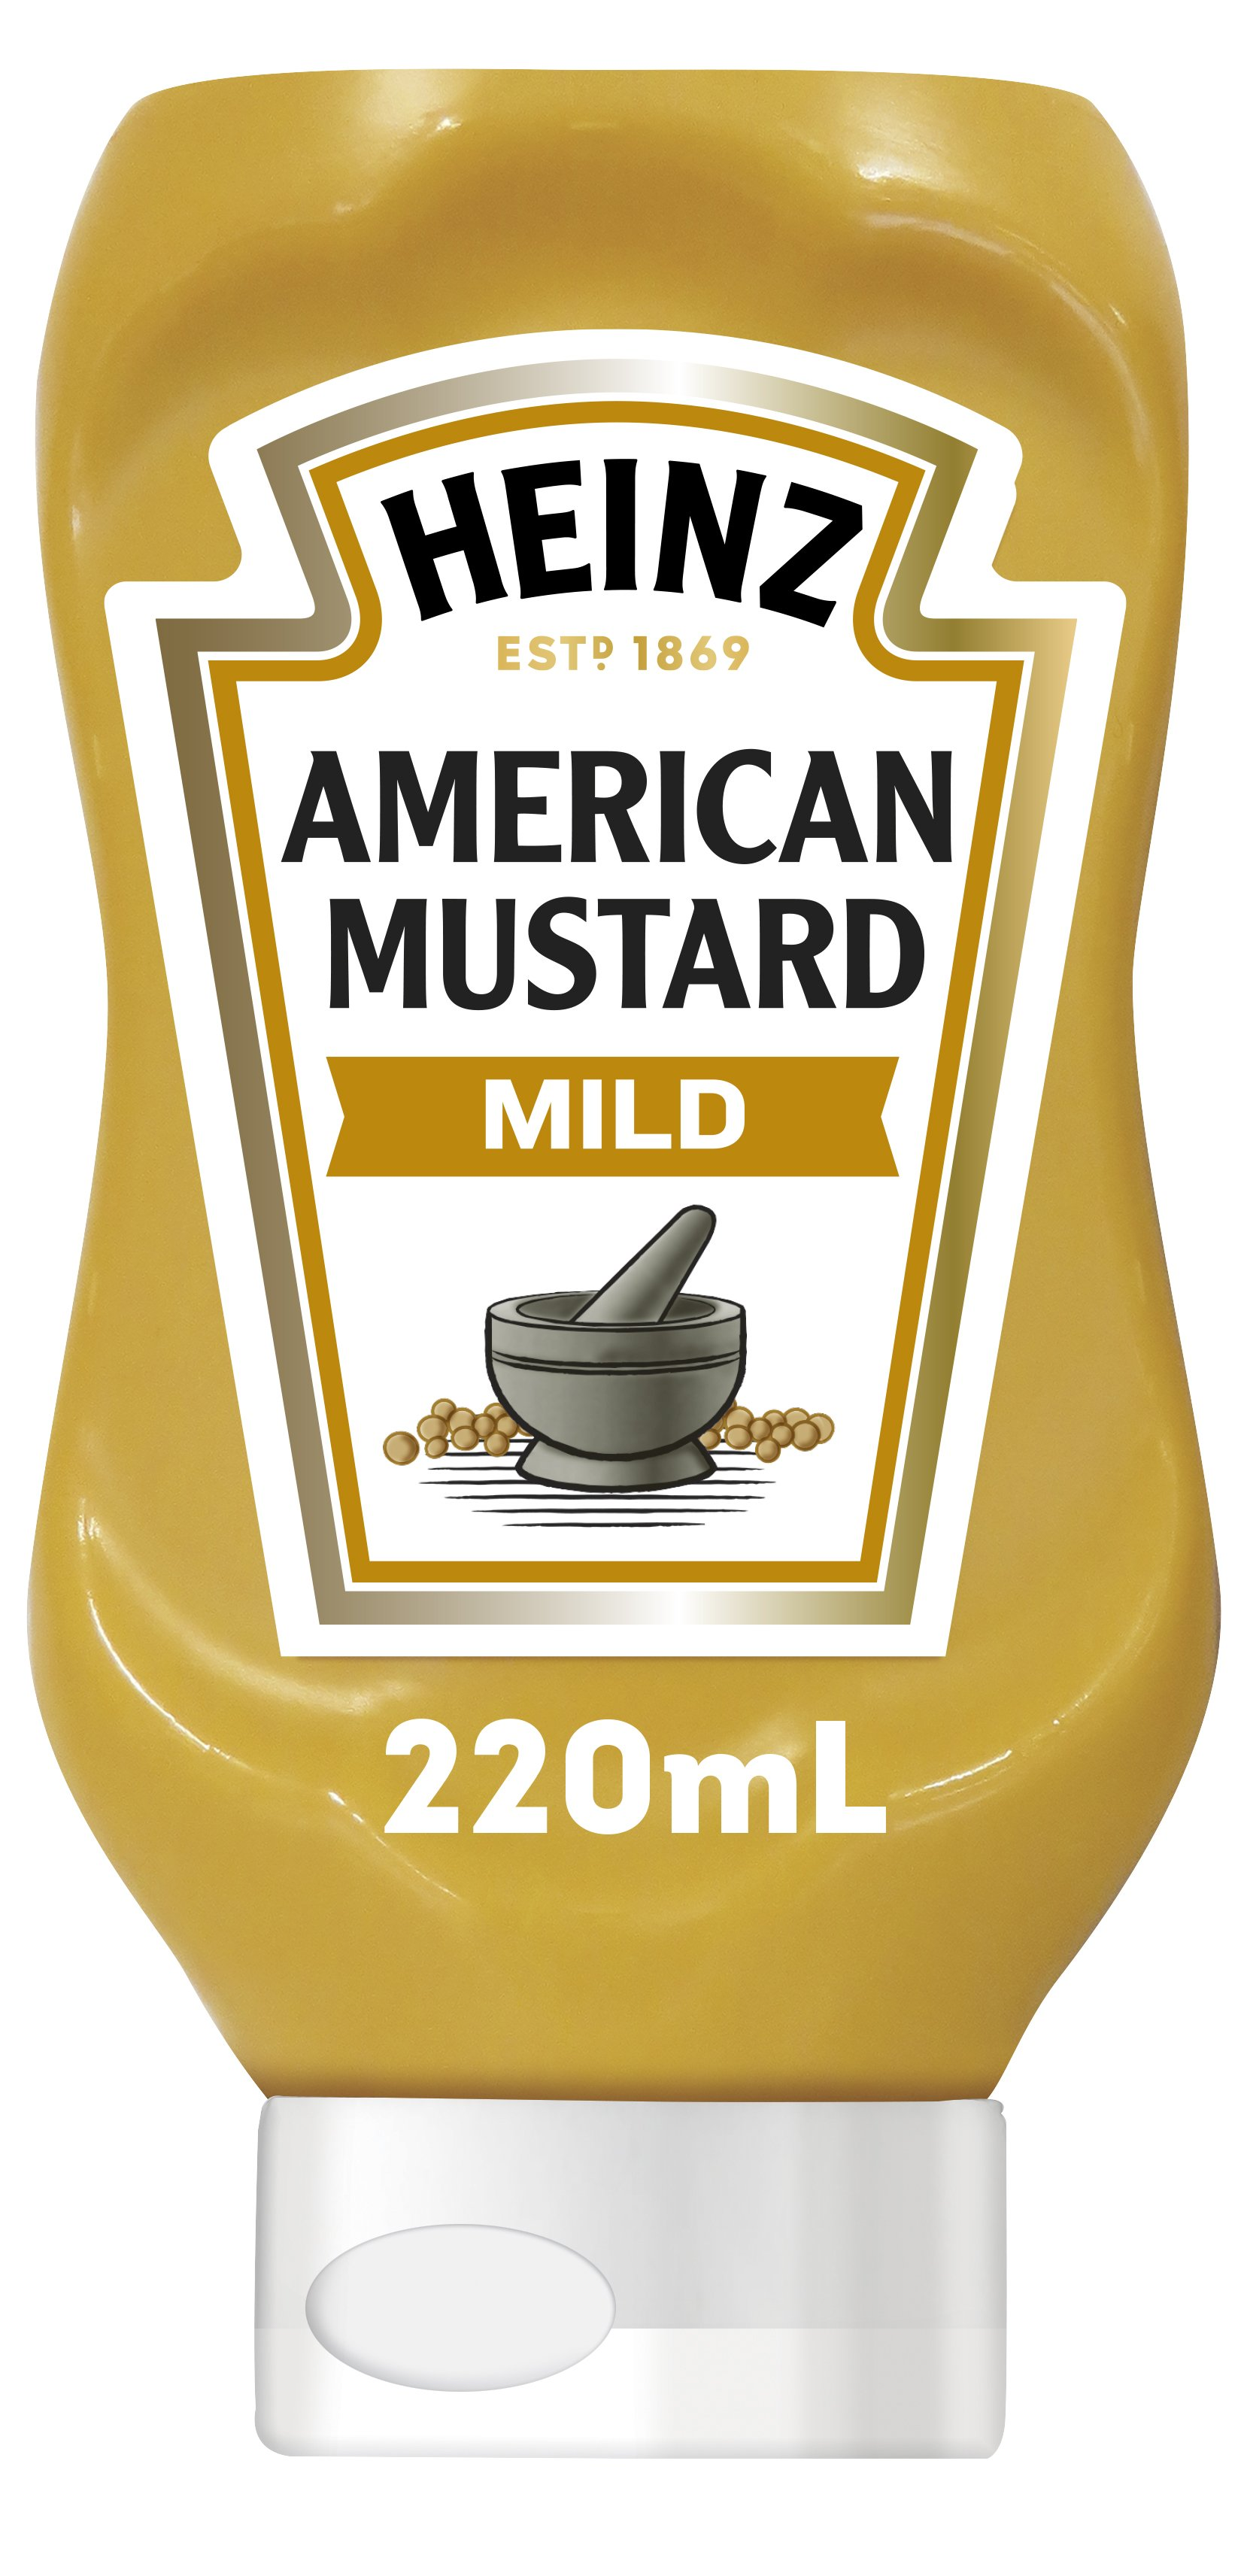 Photograph of Heinz® American Mustard 220mL product